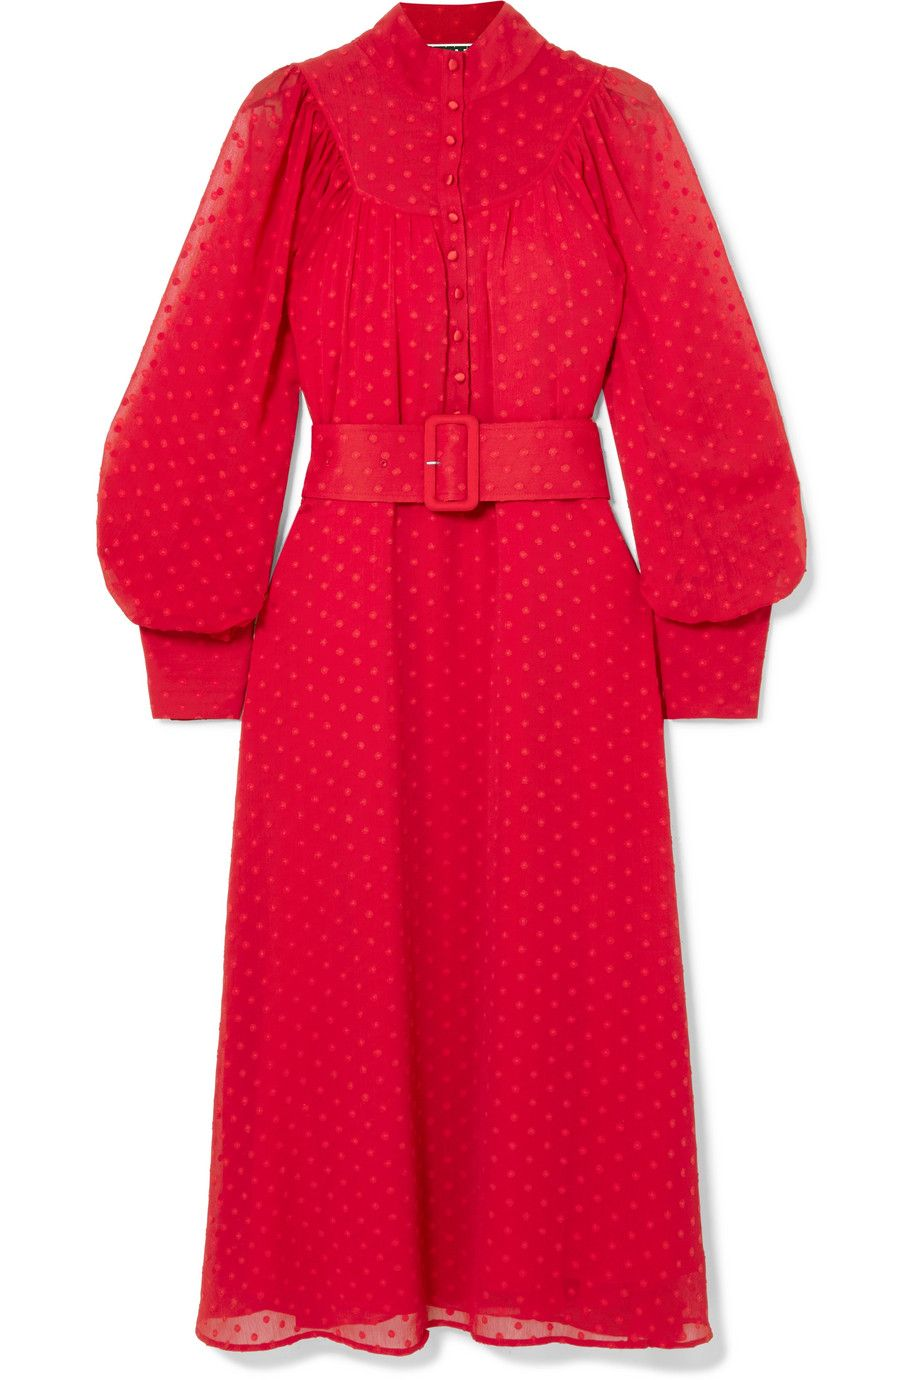 otate-birger-christensen-red-belted-fil-coupe-chiffon-midi-dress